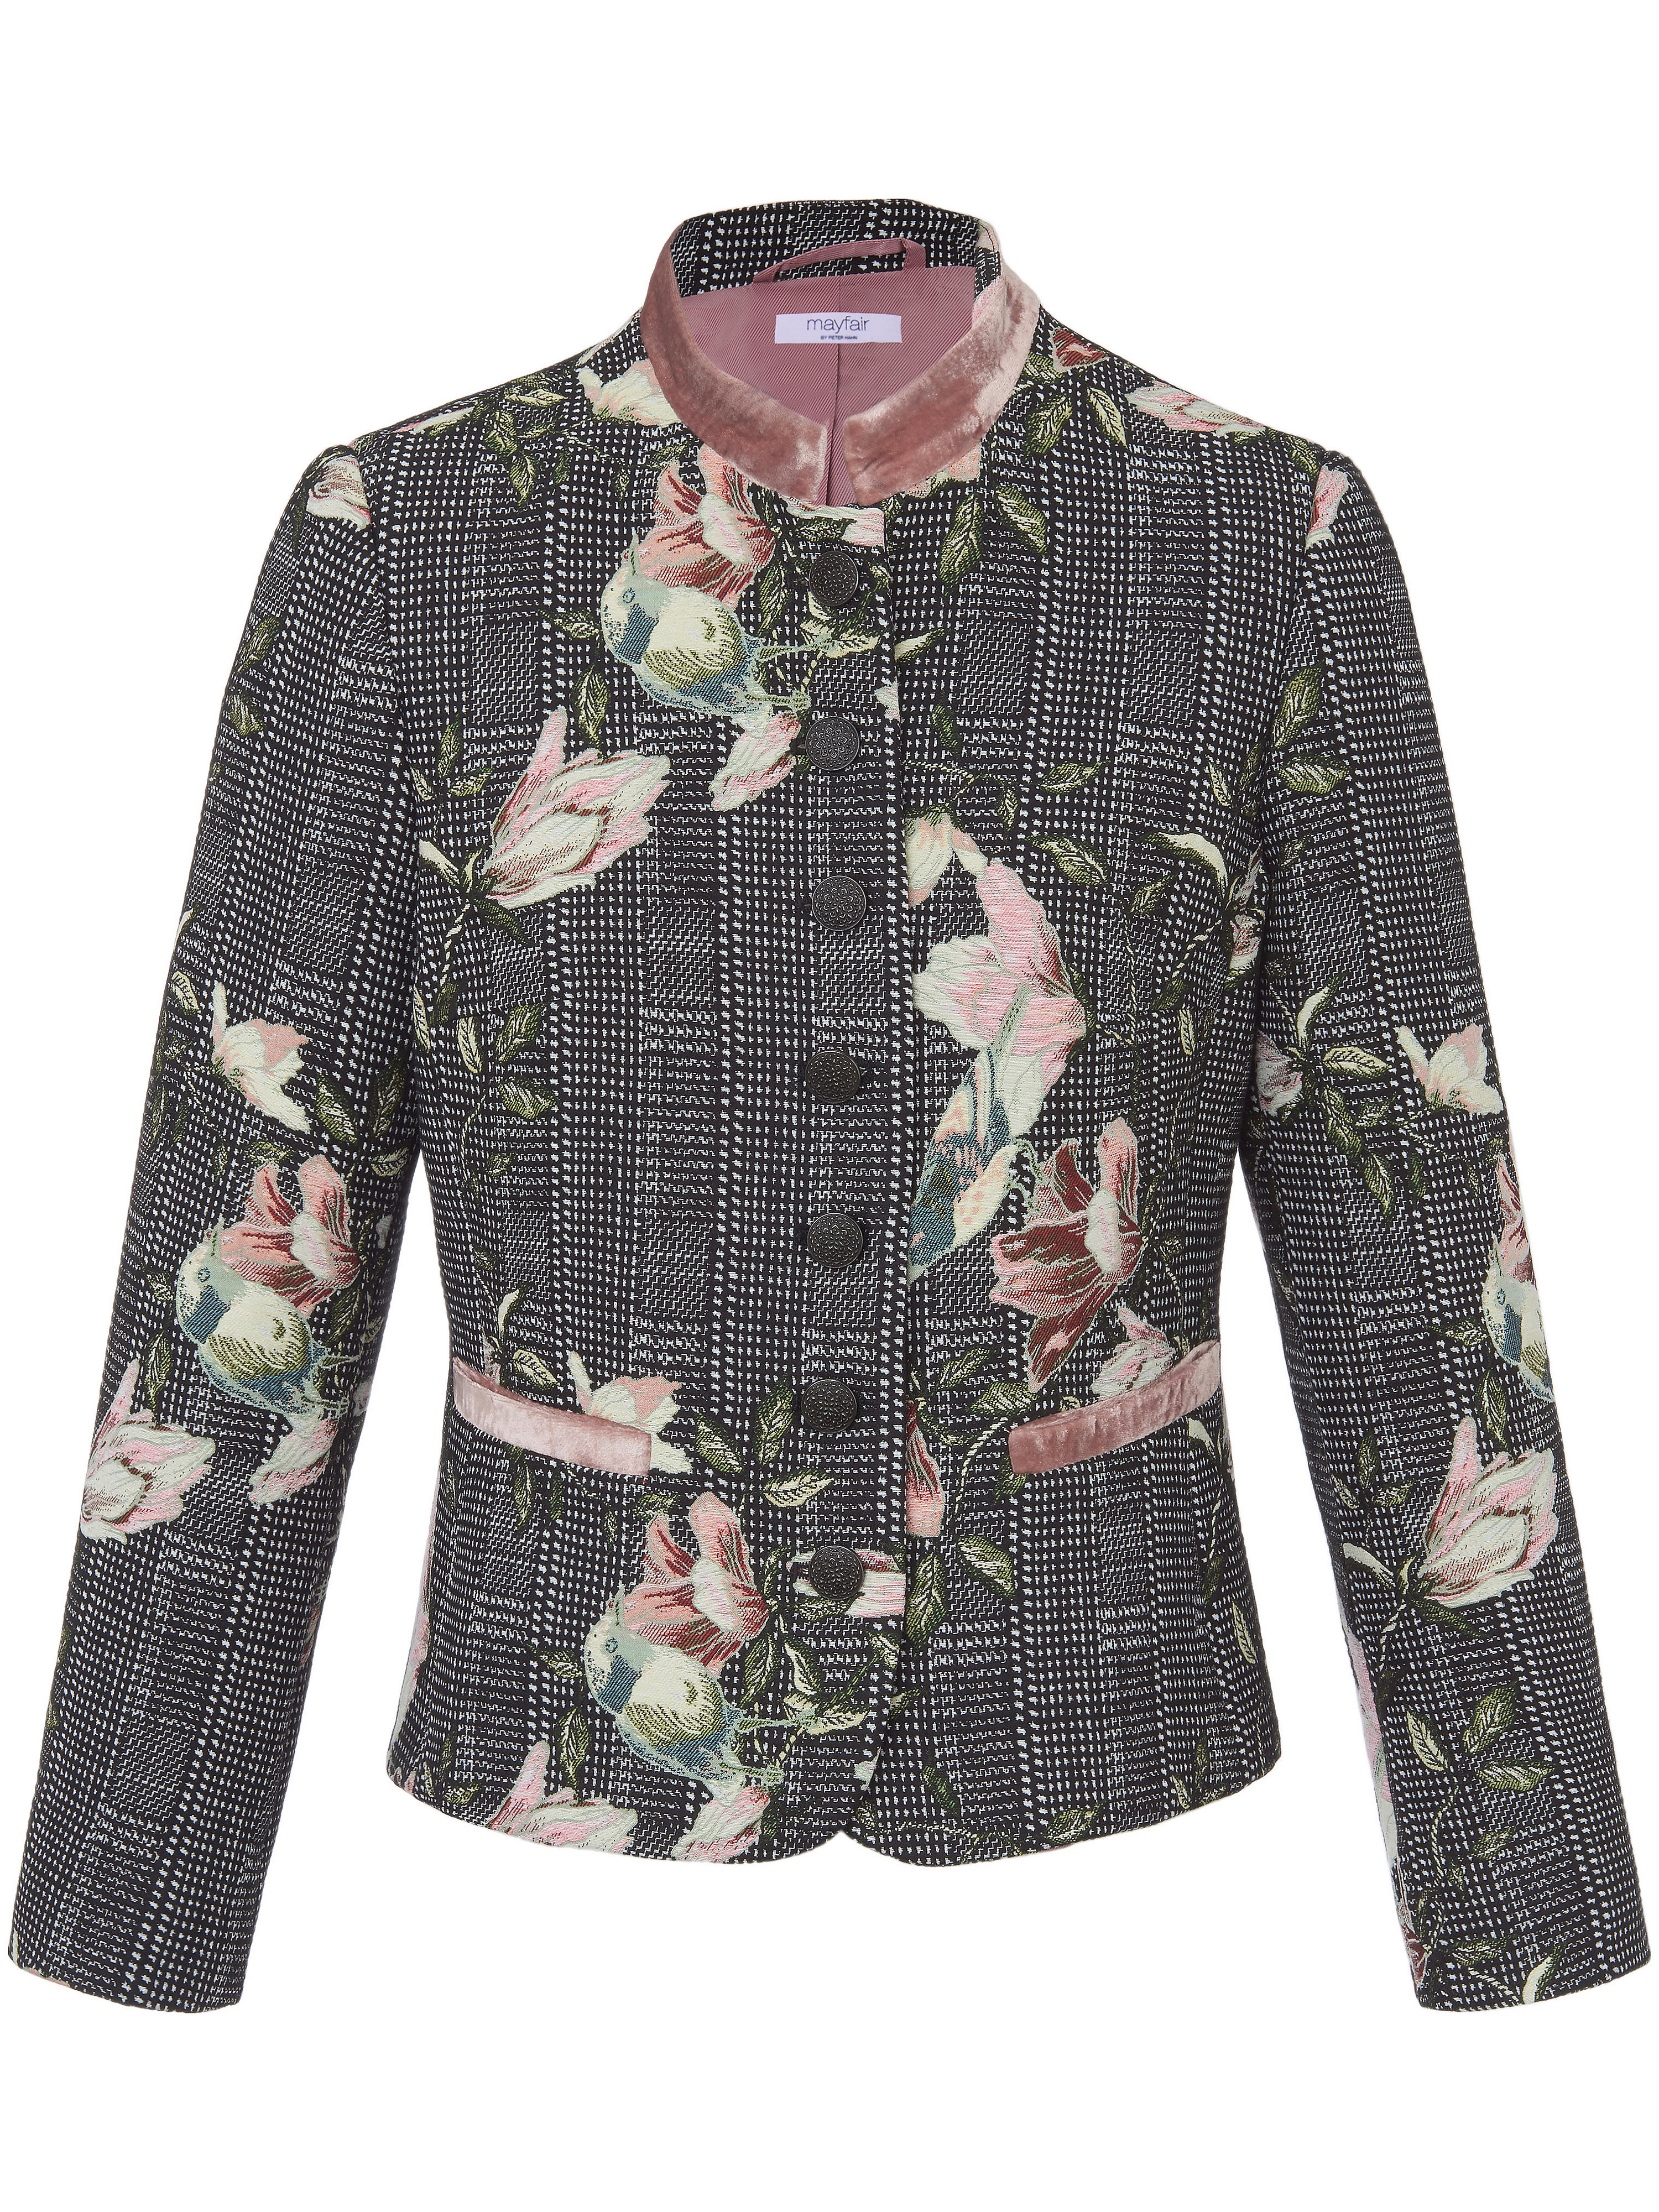 Le blazer  mayfair by Peter Hahn multicolore taille 46